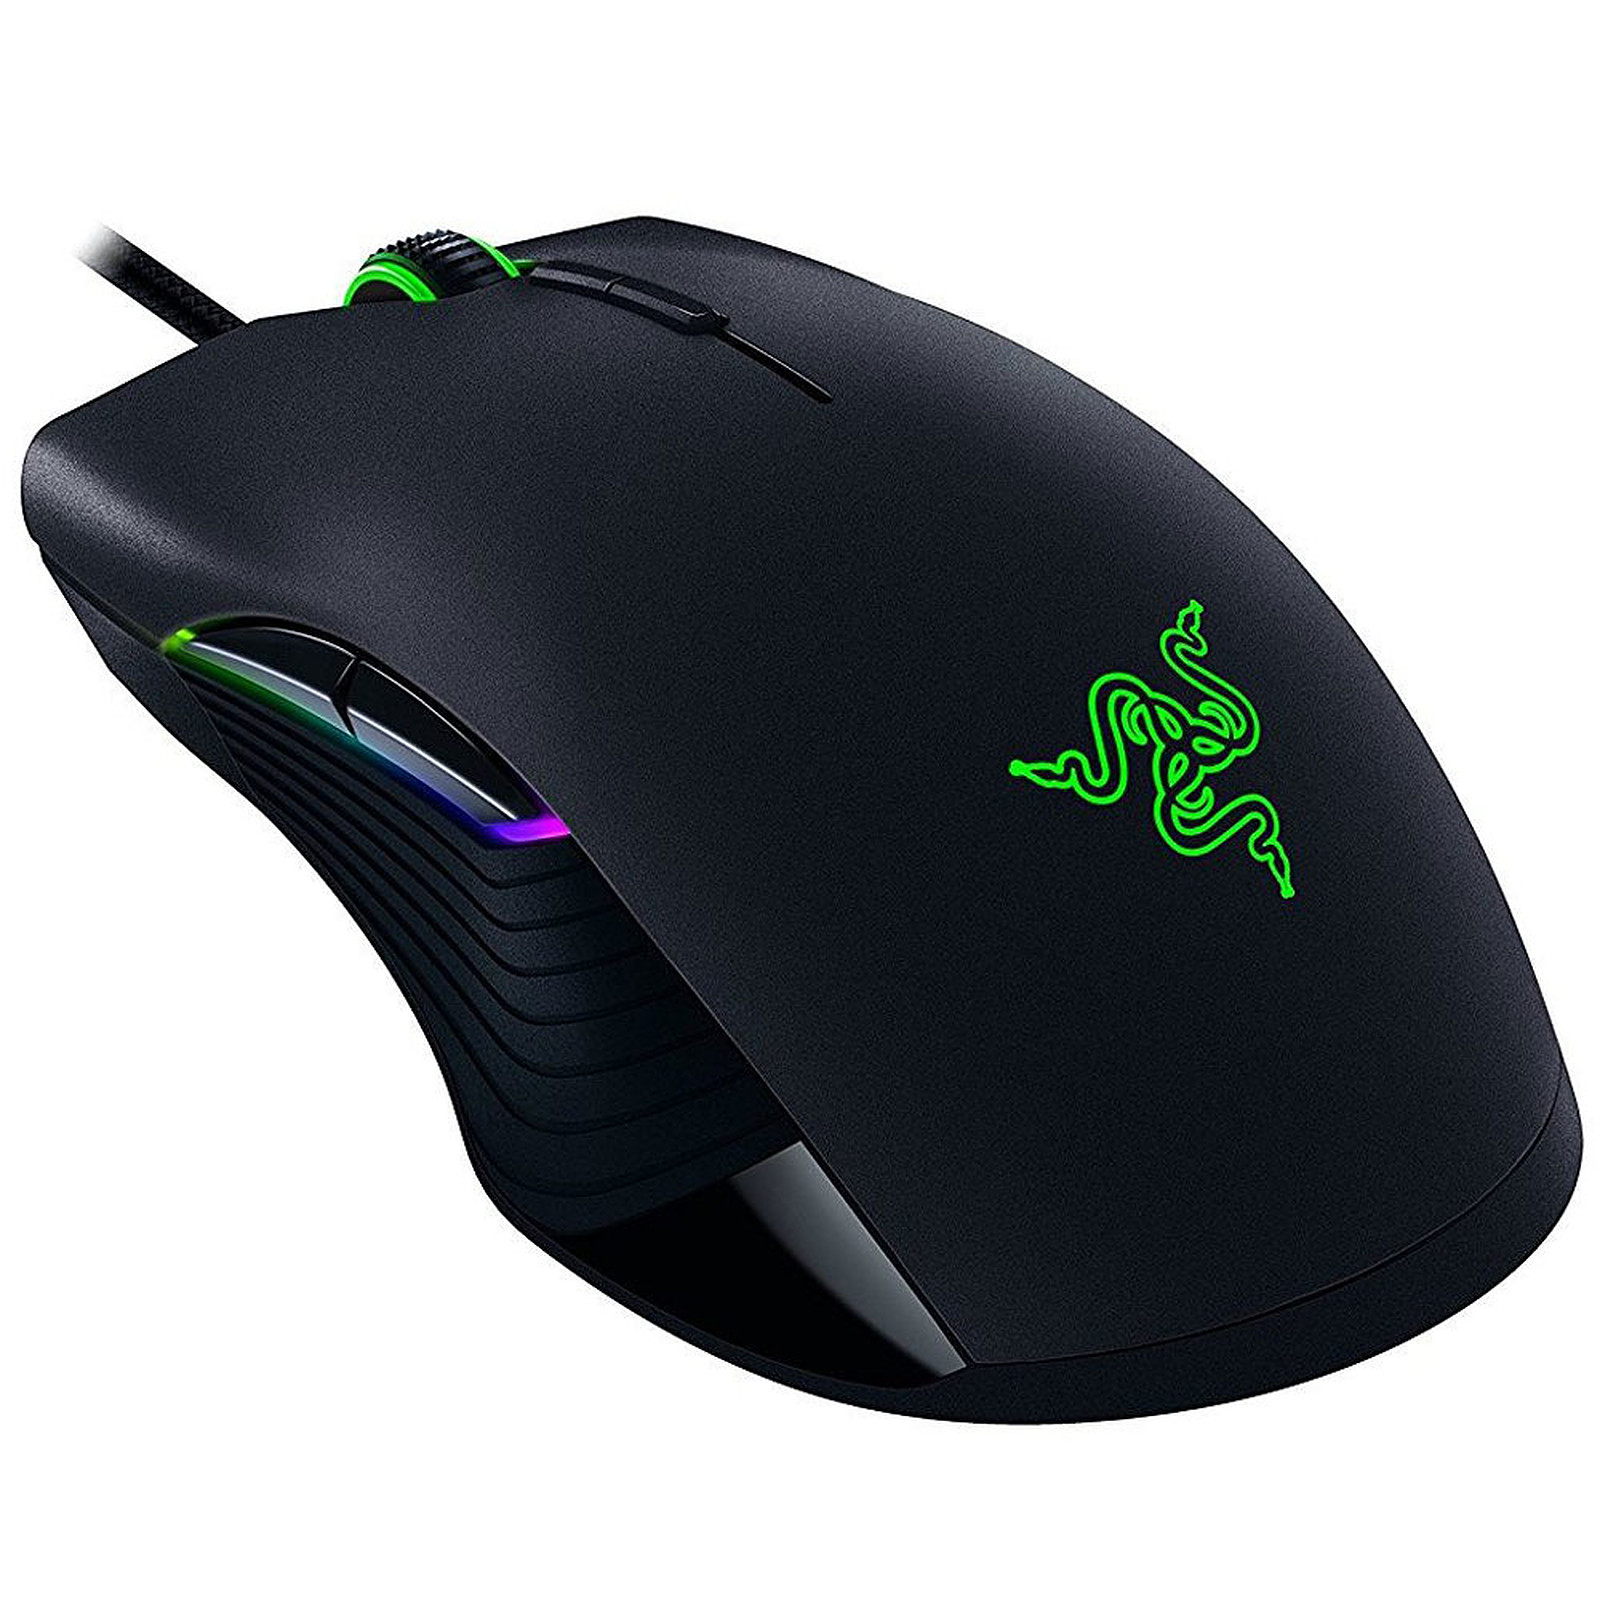 Razer Lancehead Tournament Edition (Gunmetal Grey)